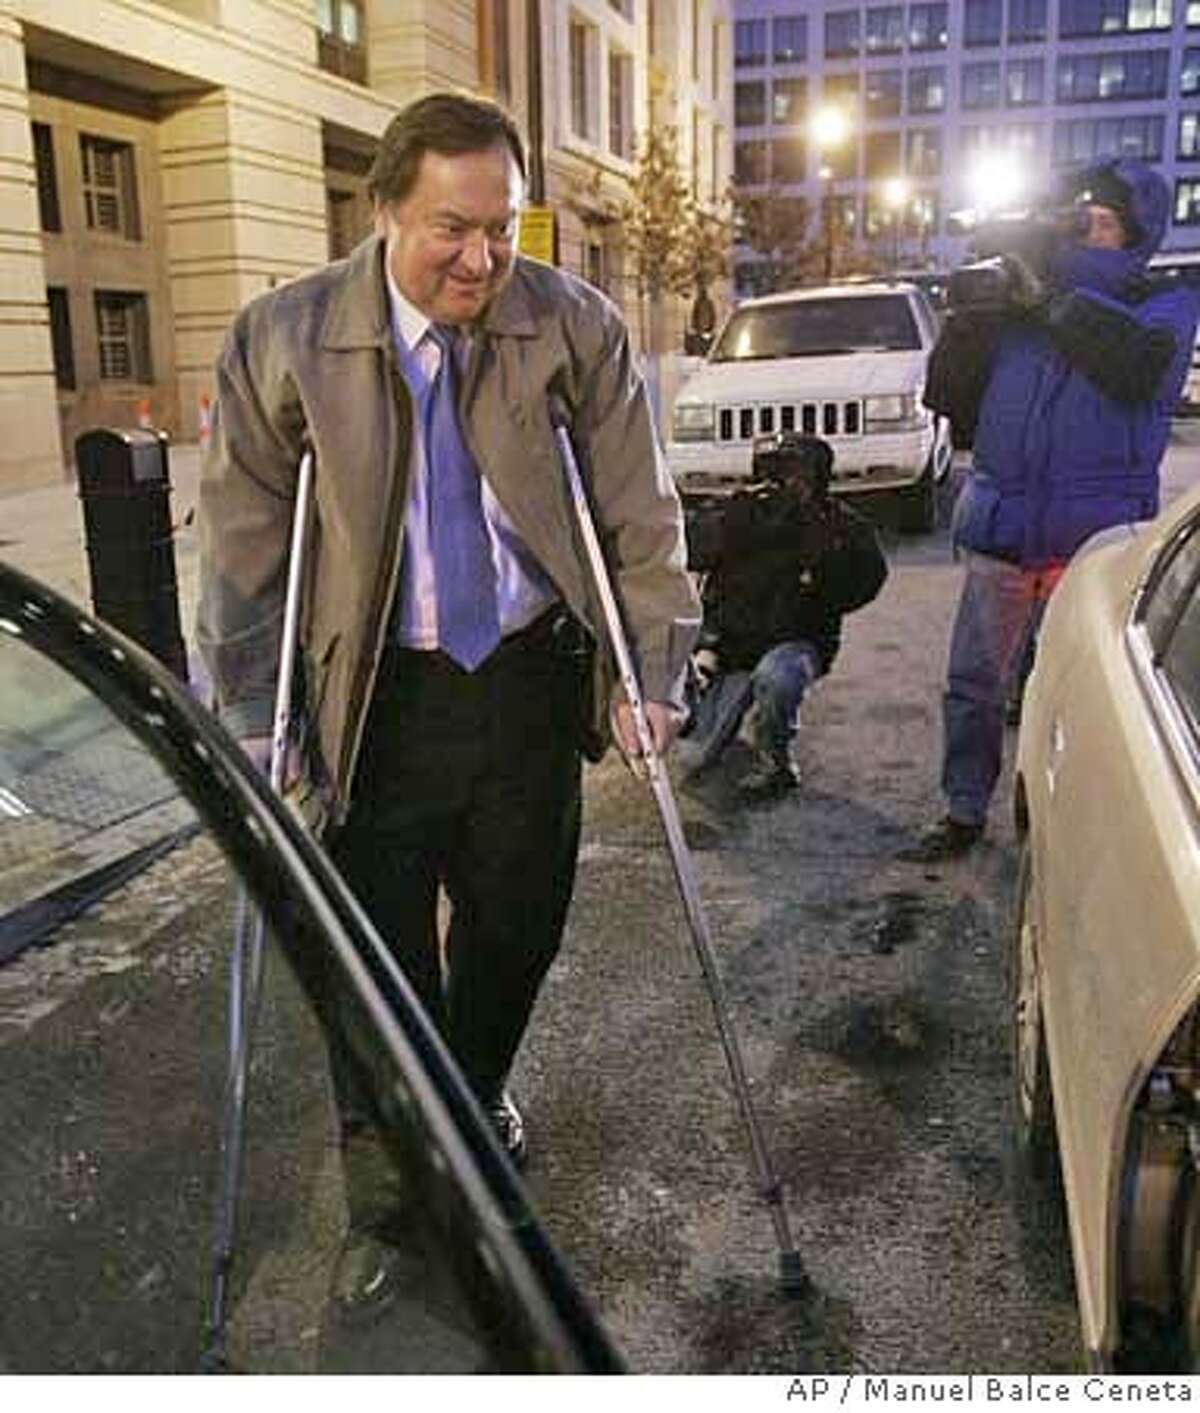 Tim Russert, Washington bureau chief of NBC News, walks with the aid of crutches as he leaves U.S. Federal Court, Thursday, Feb. 7, 2007, in Washington. Russert is key prosecution witness in the I Lewis